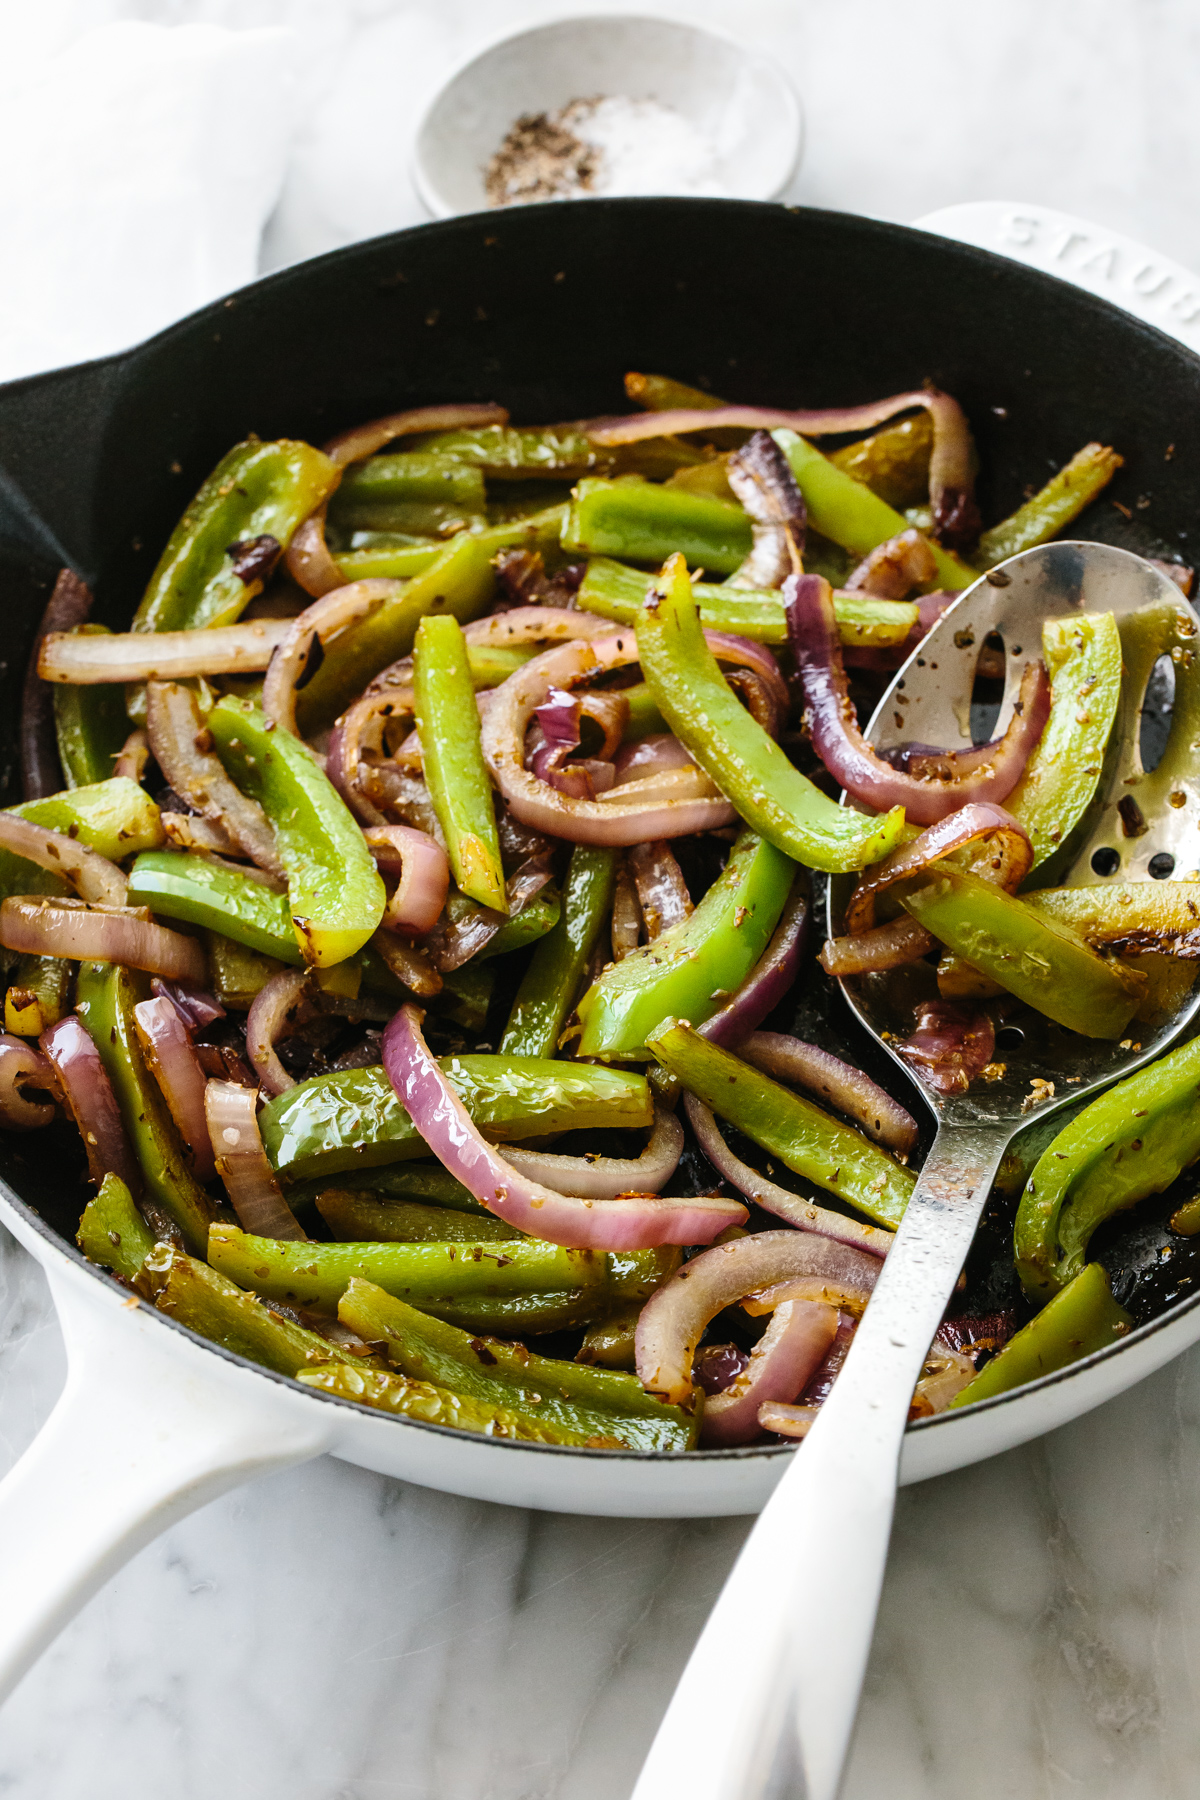 Fajita veggies in a skillet with a slotted spoon.